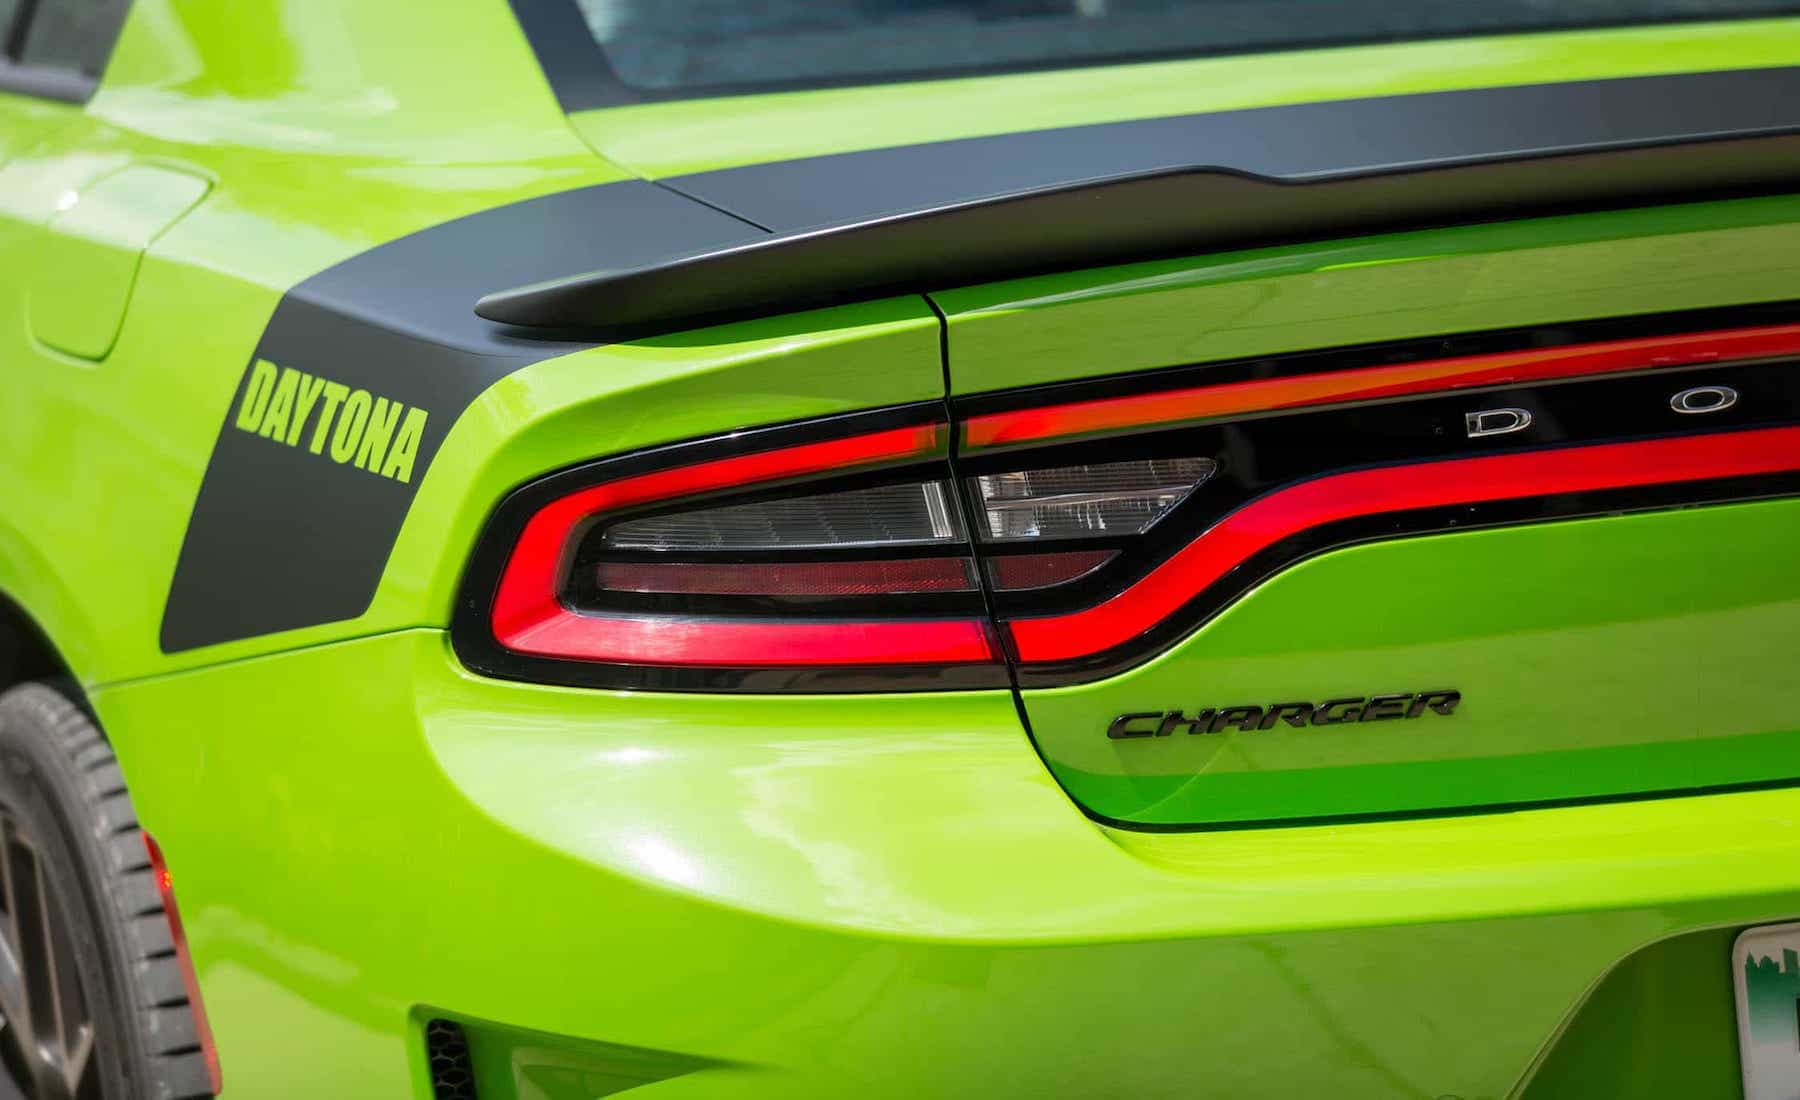 2017 Dodge Charger Daytona 5.7L V8 Exterior View Taillight (Photo 25 of 38)